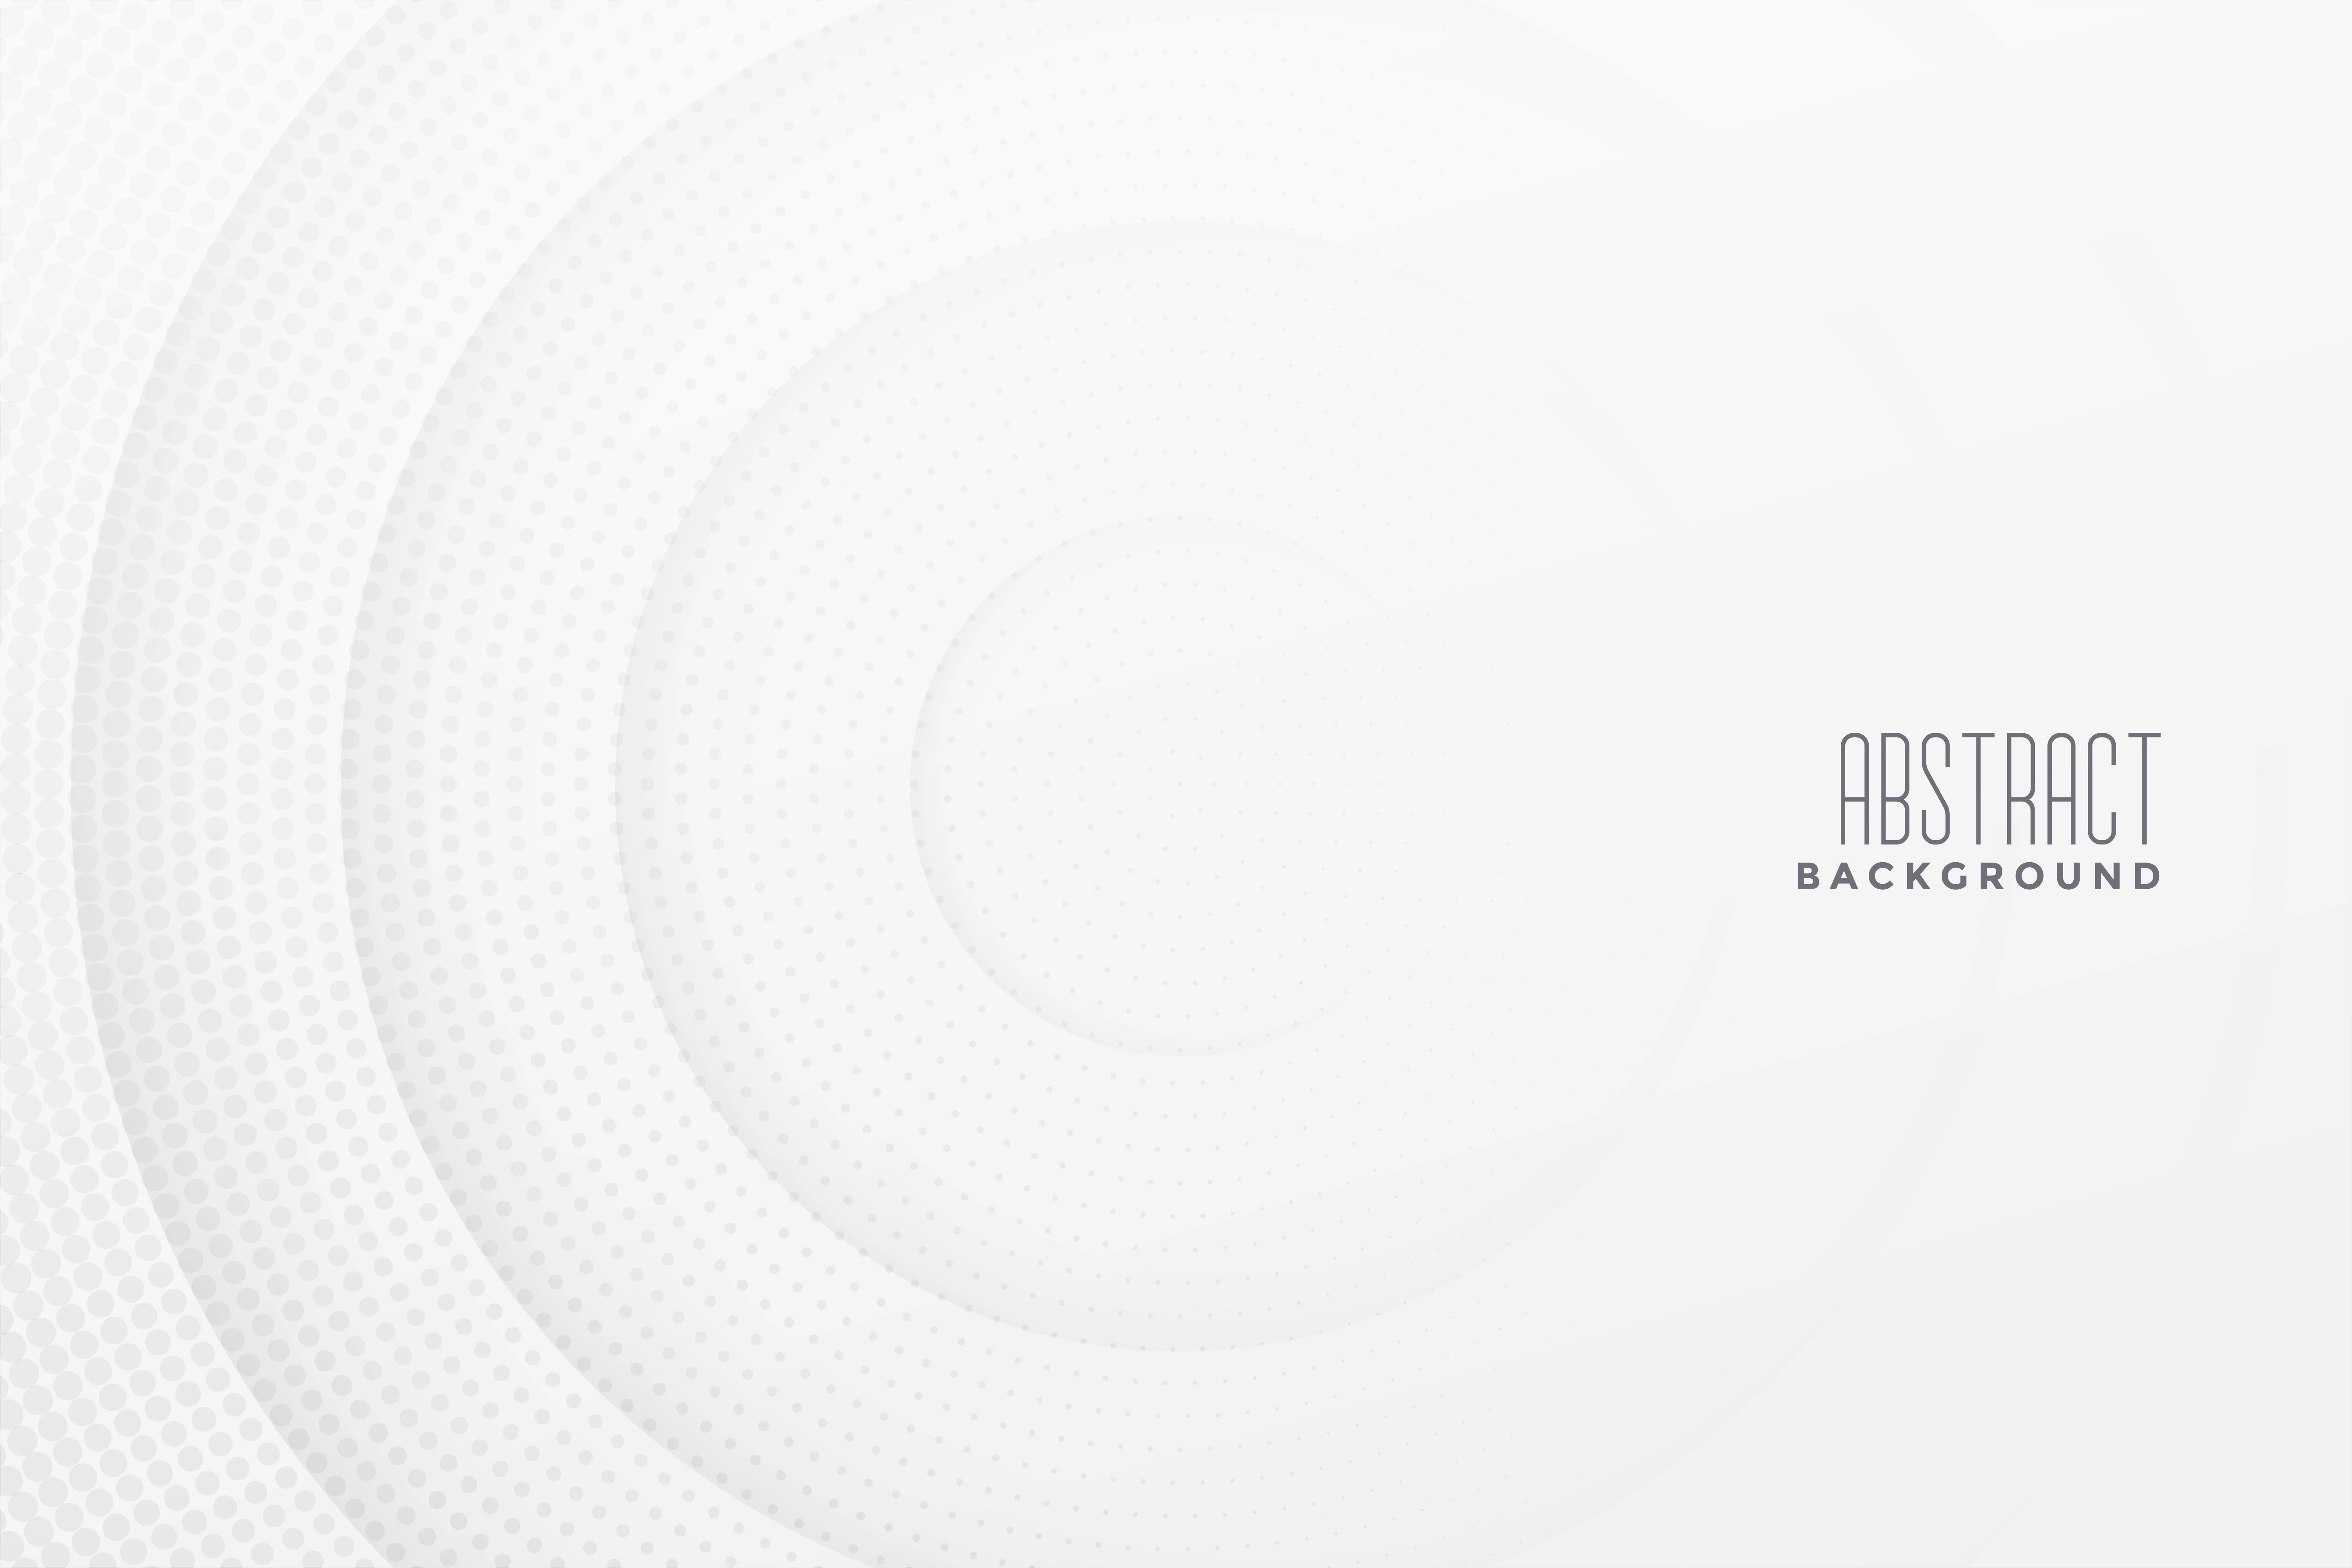 Abstract Halftone White Background Design